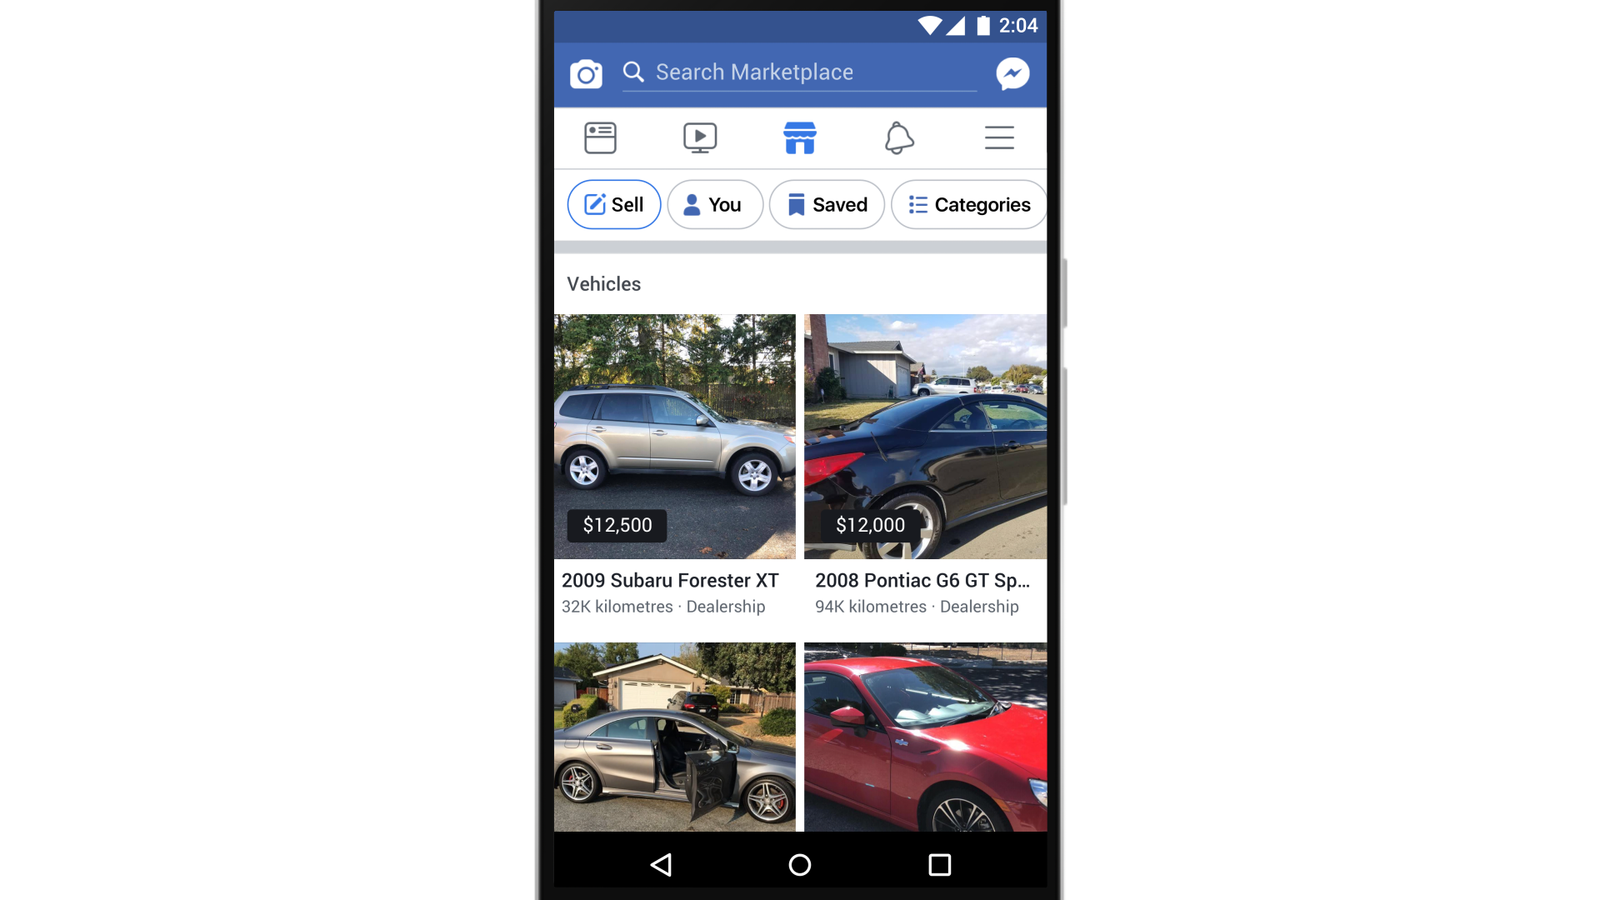 Used Cars Dealerships >> Facebook Bolsters Its Marketplace Offering With Expansion Of Vehicle Category - B&T